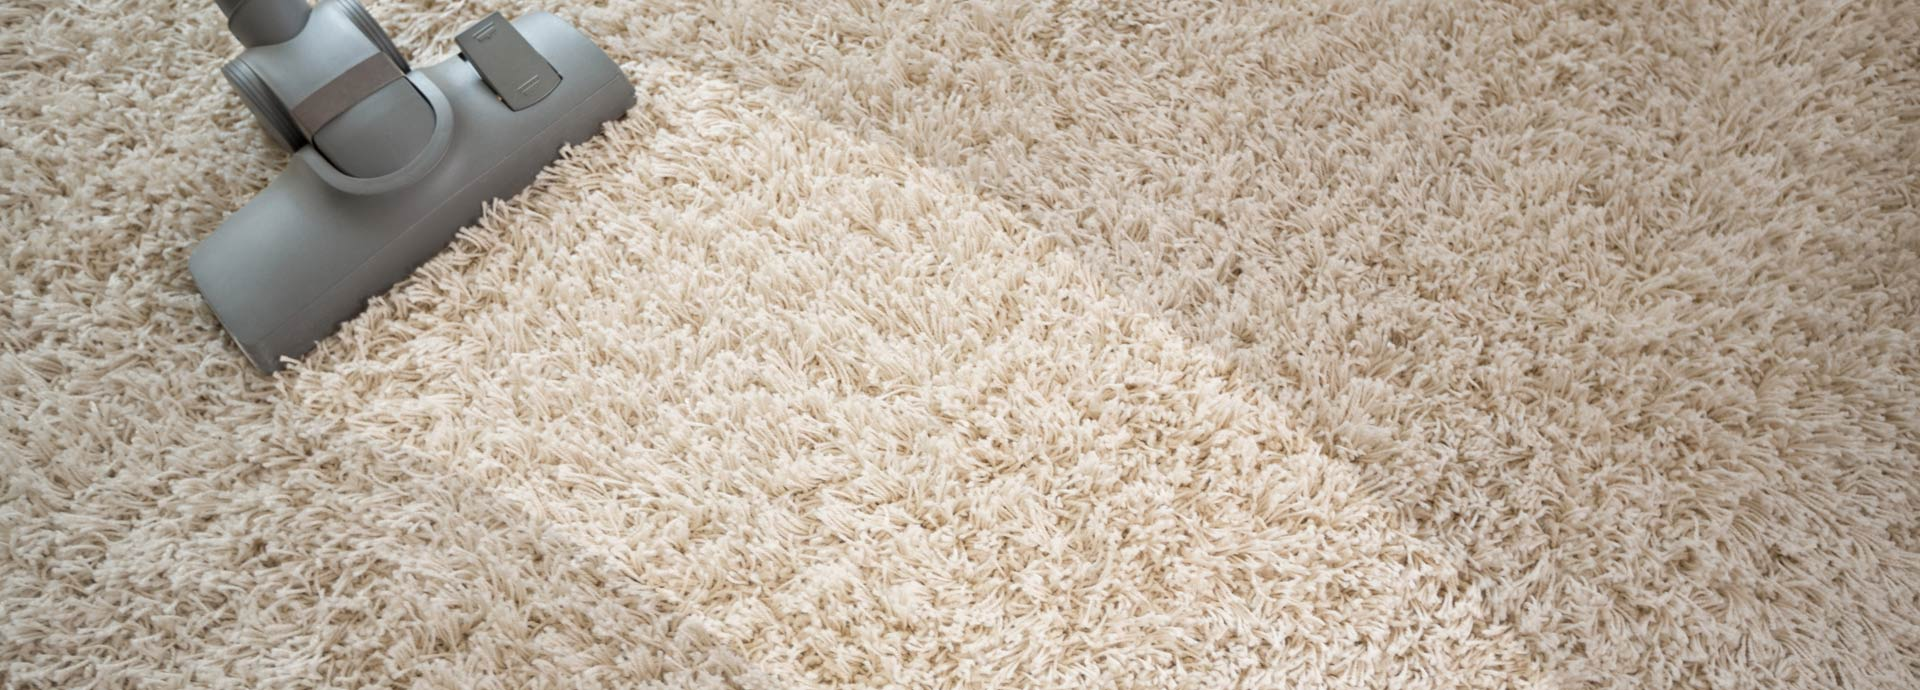 Carpet Cleaning In Houston Texas 1